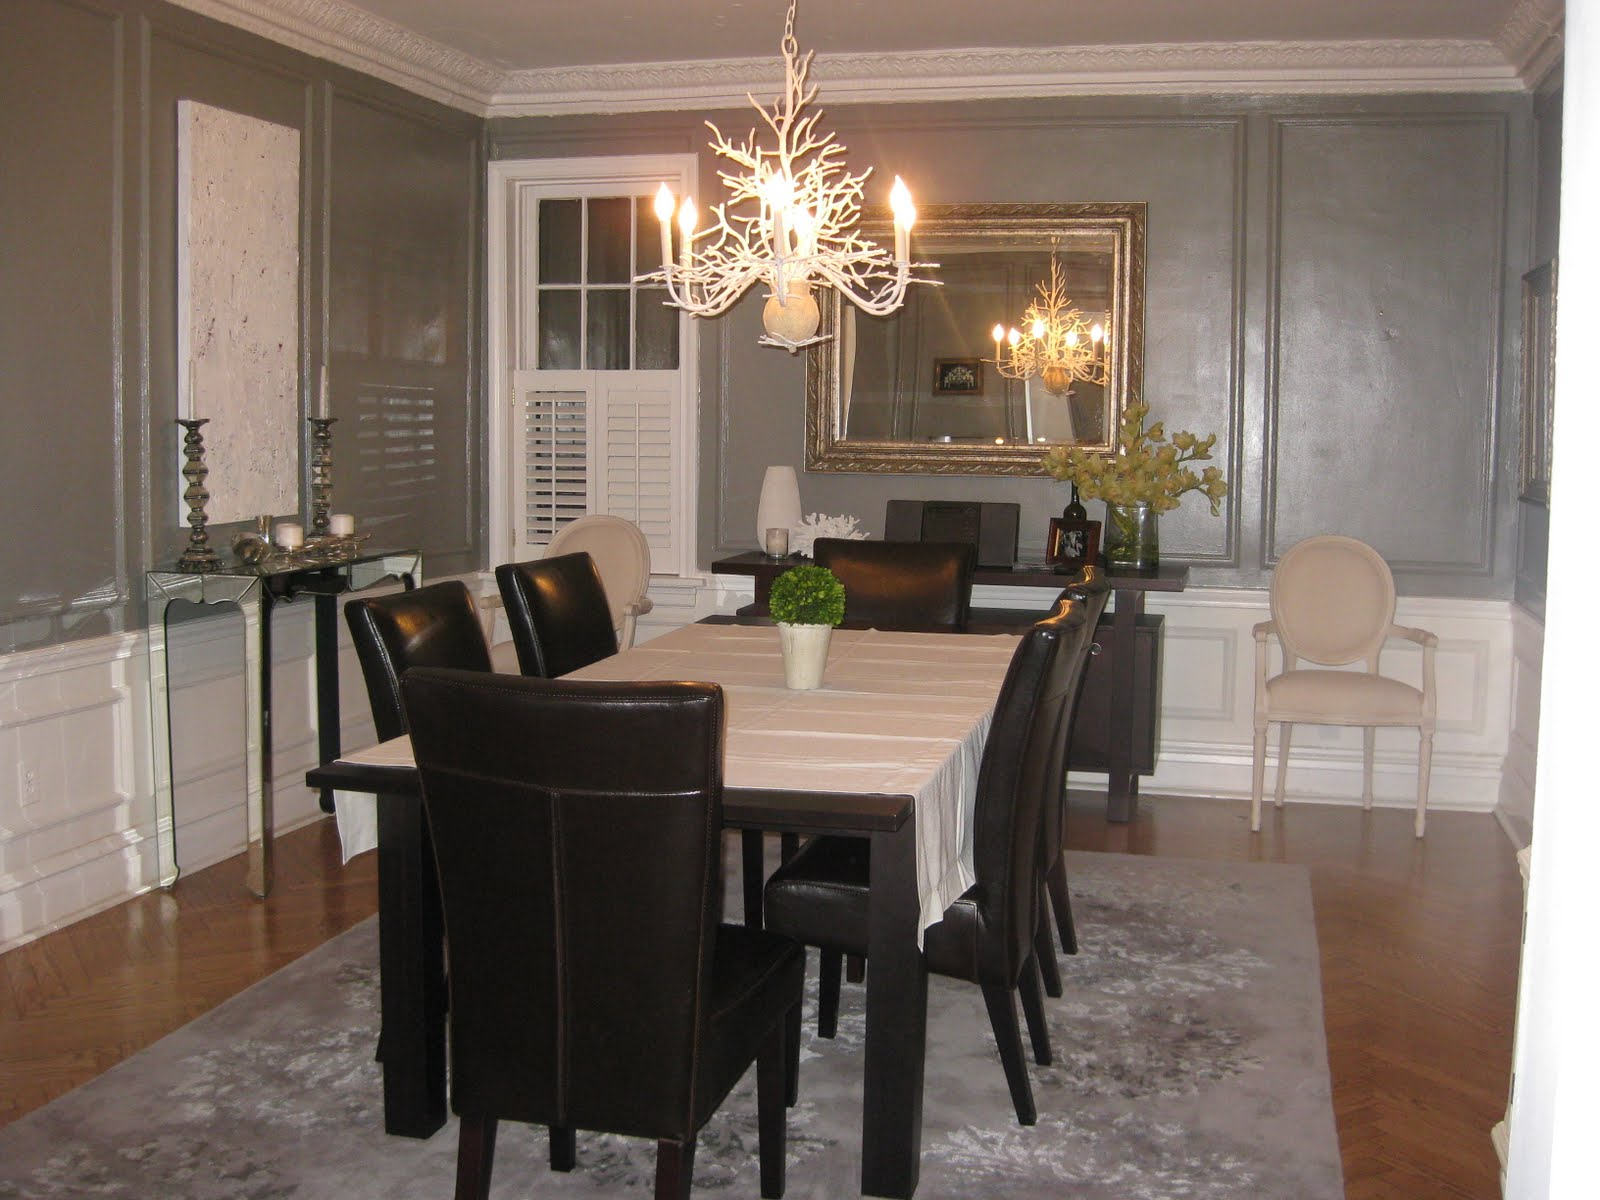 Living and dining room furniture